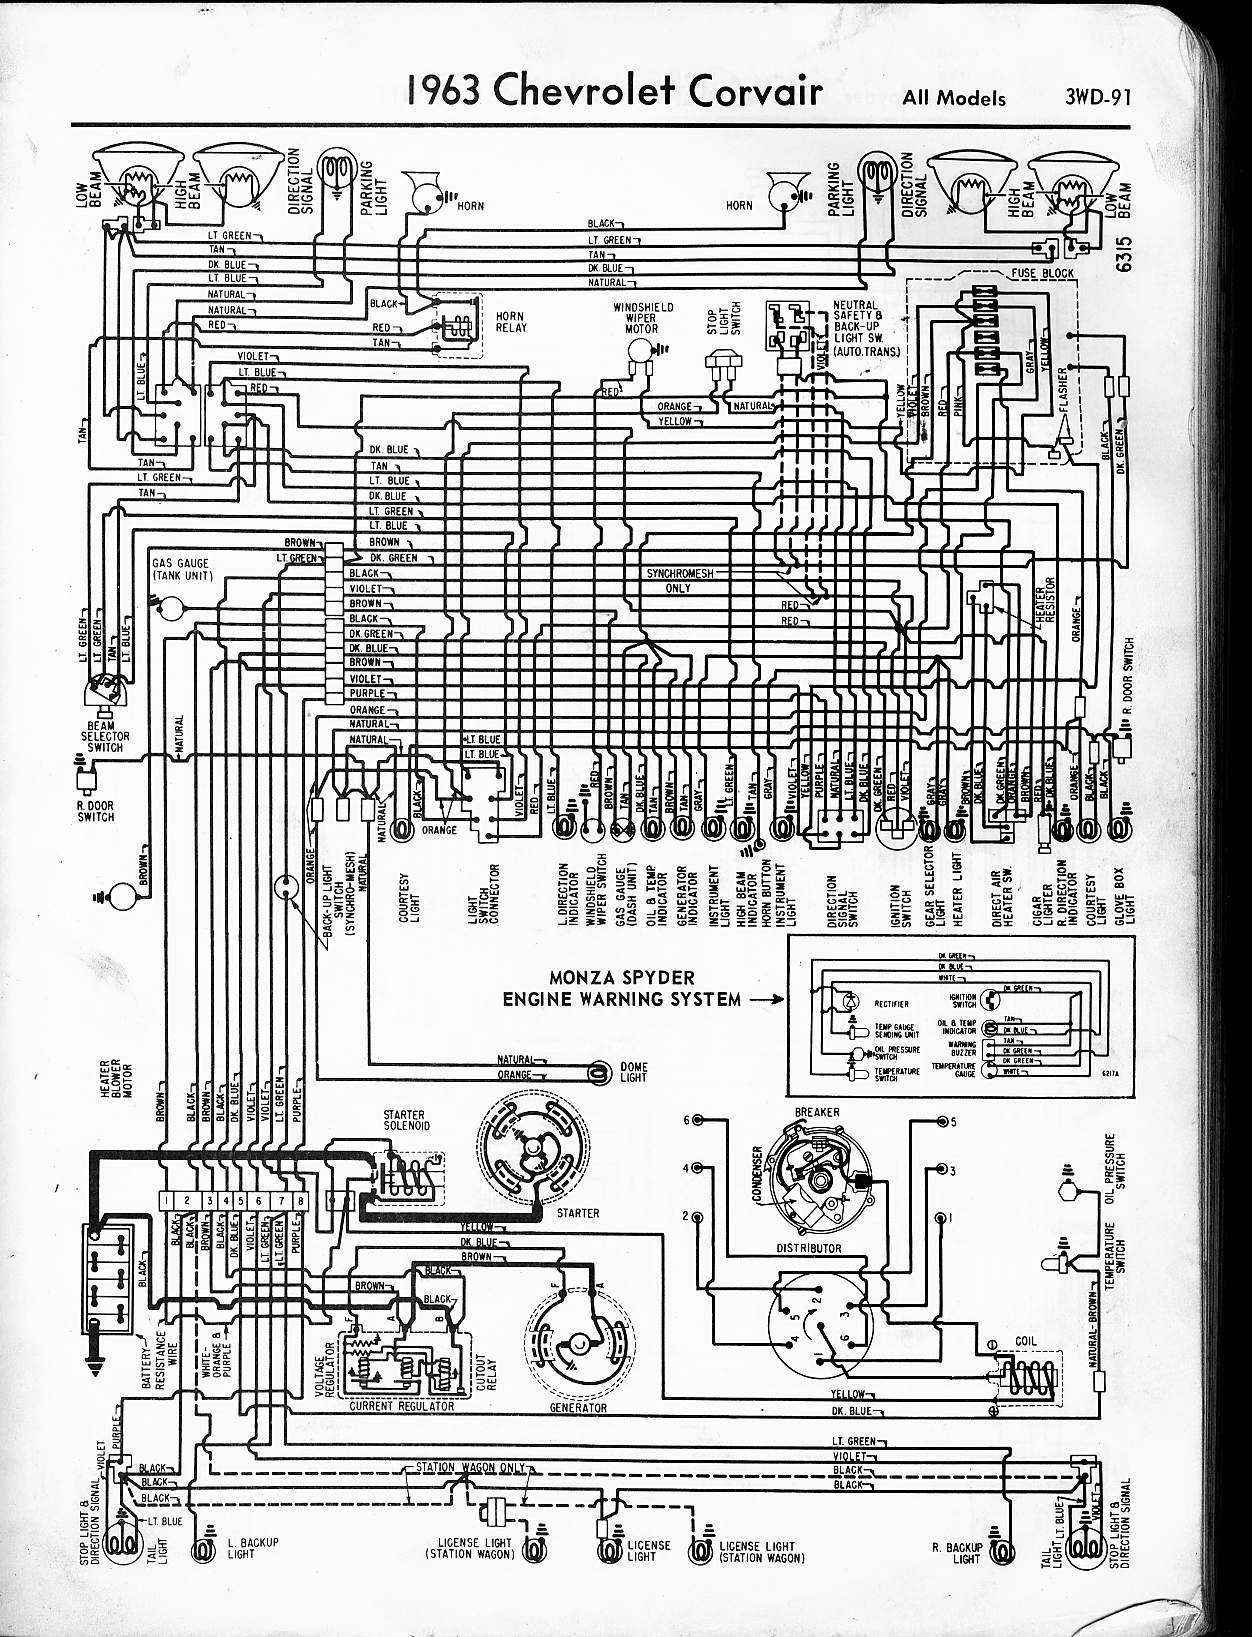 MWireChev63_3WD 091 57 65 chevy wiring diagrams 1963 corvair wiring diagram at bakdesigns.co